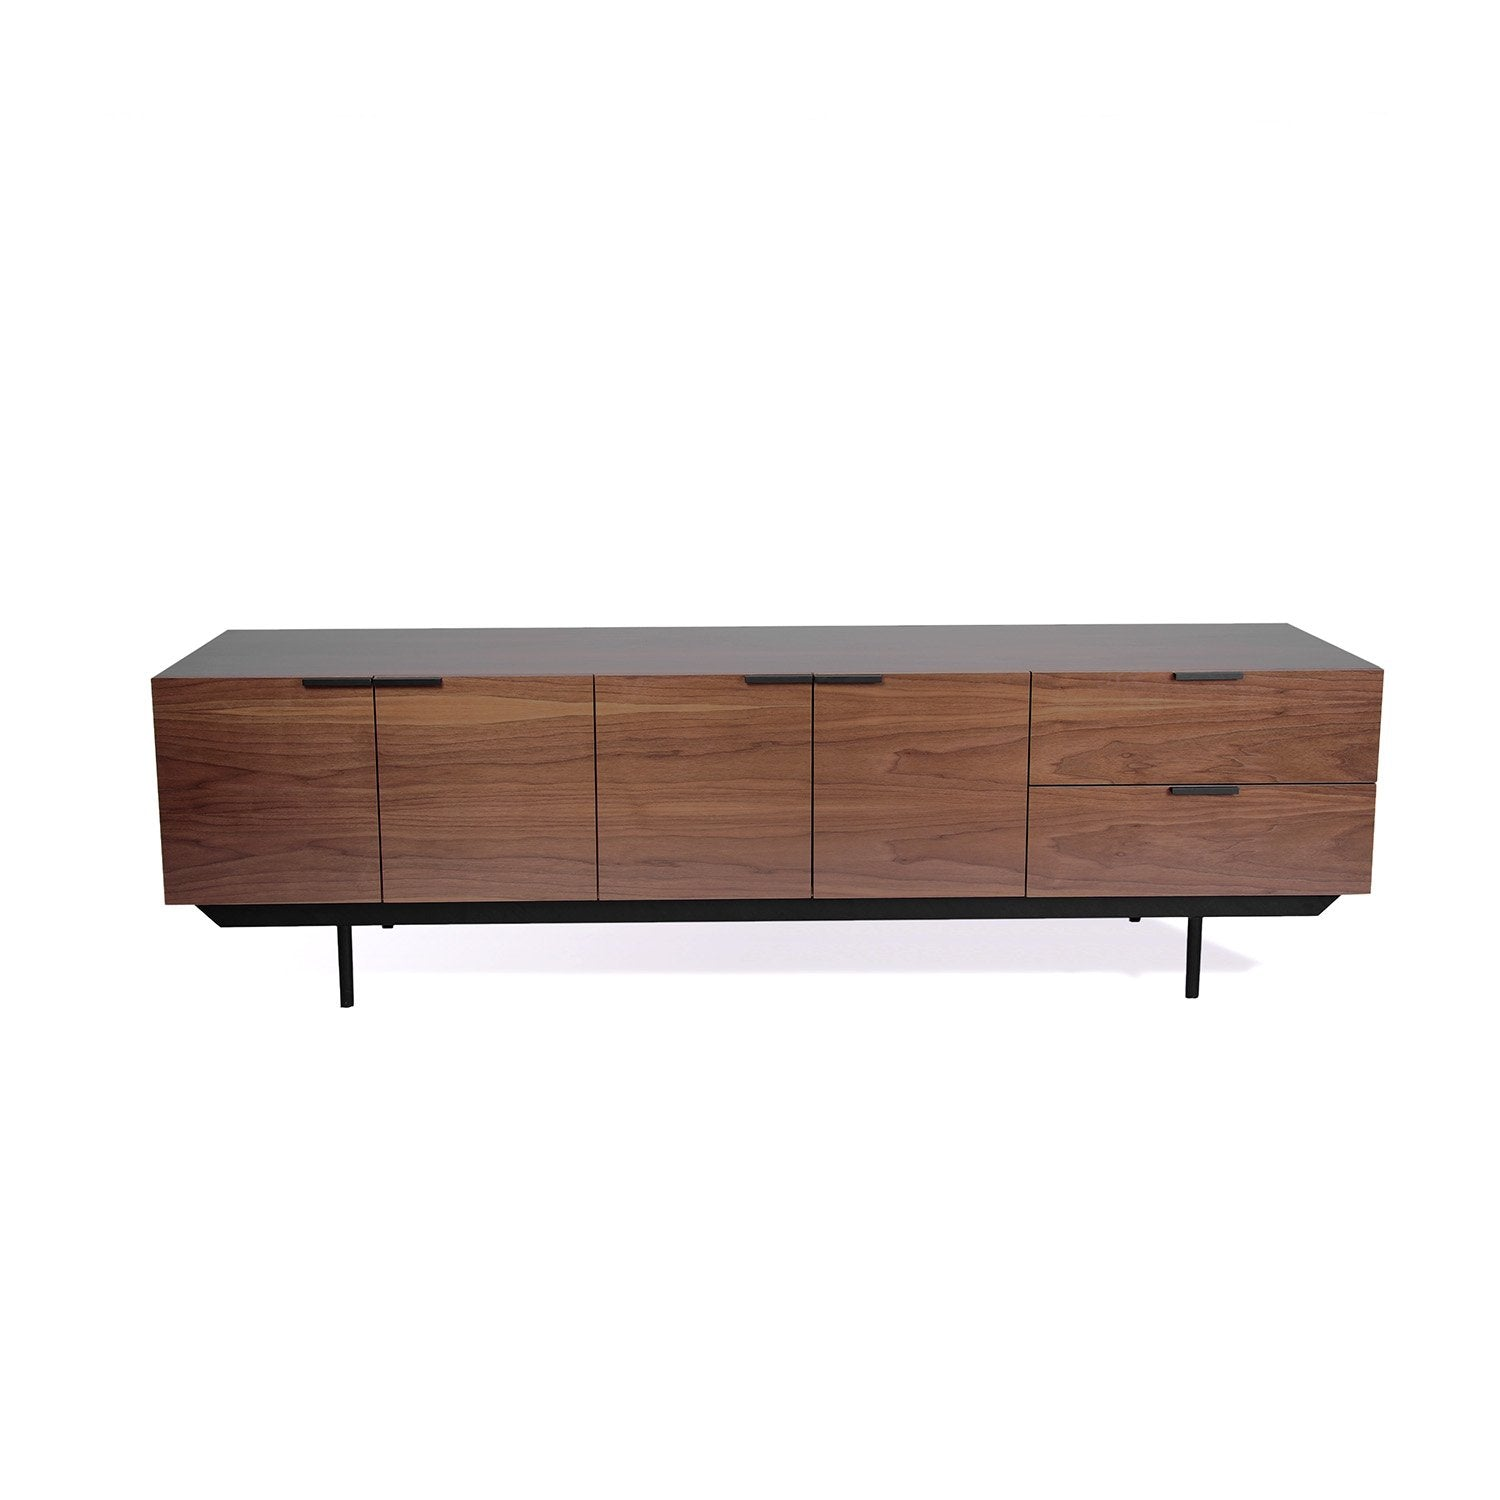 [FB0310WALNUT] Idel Sideboard